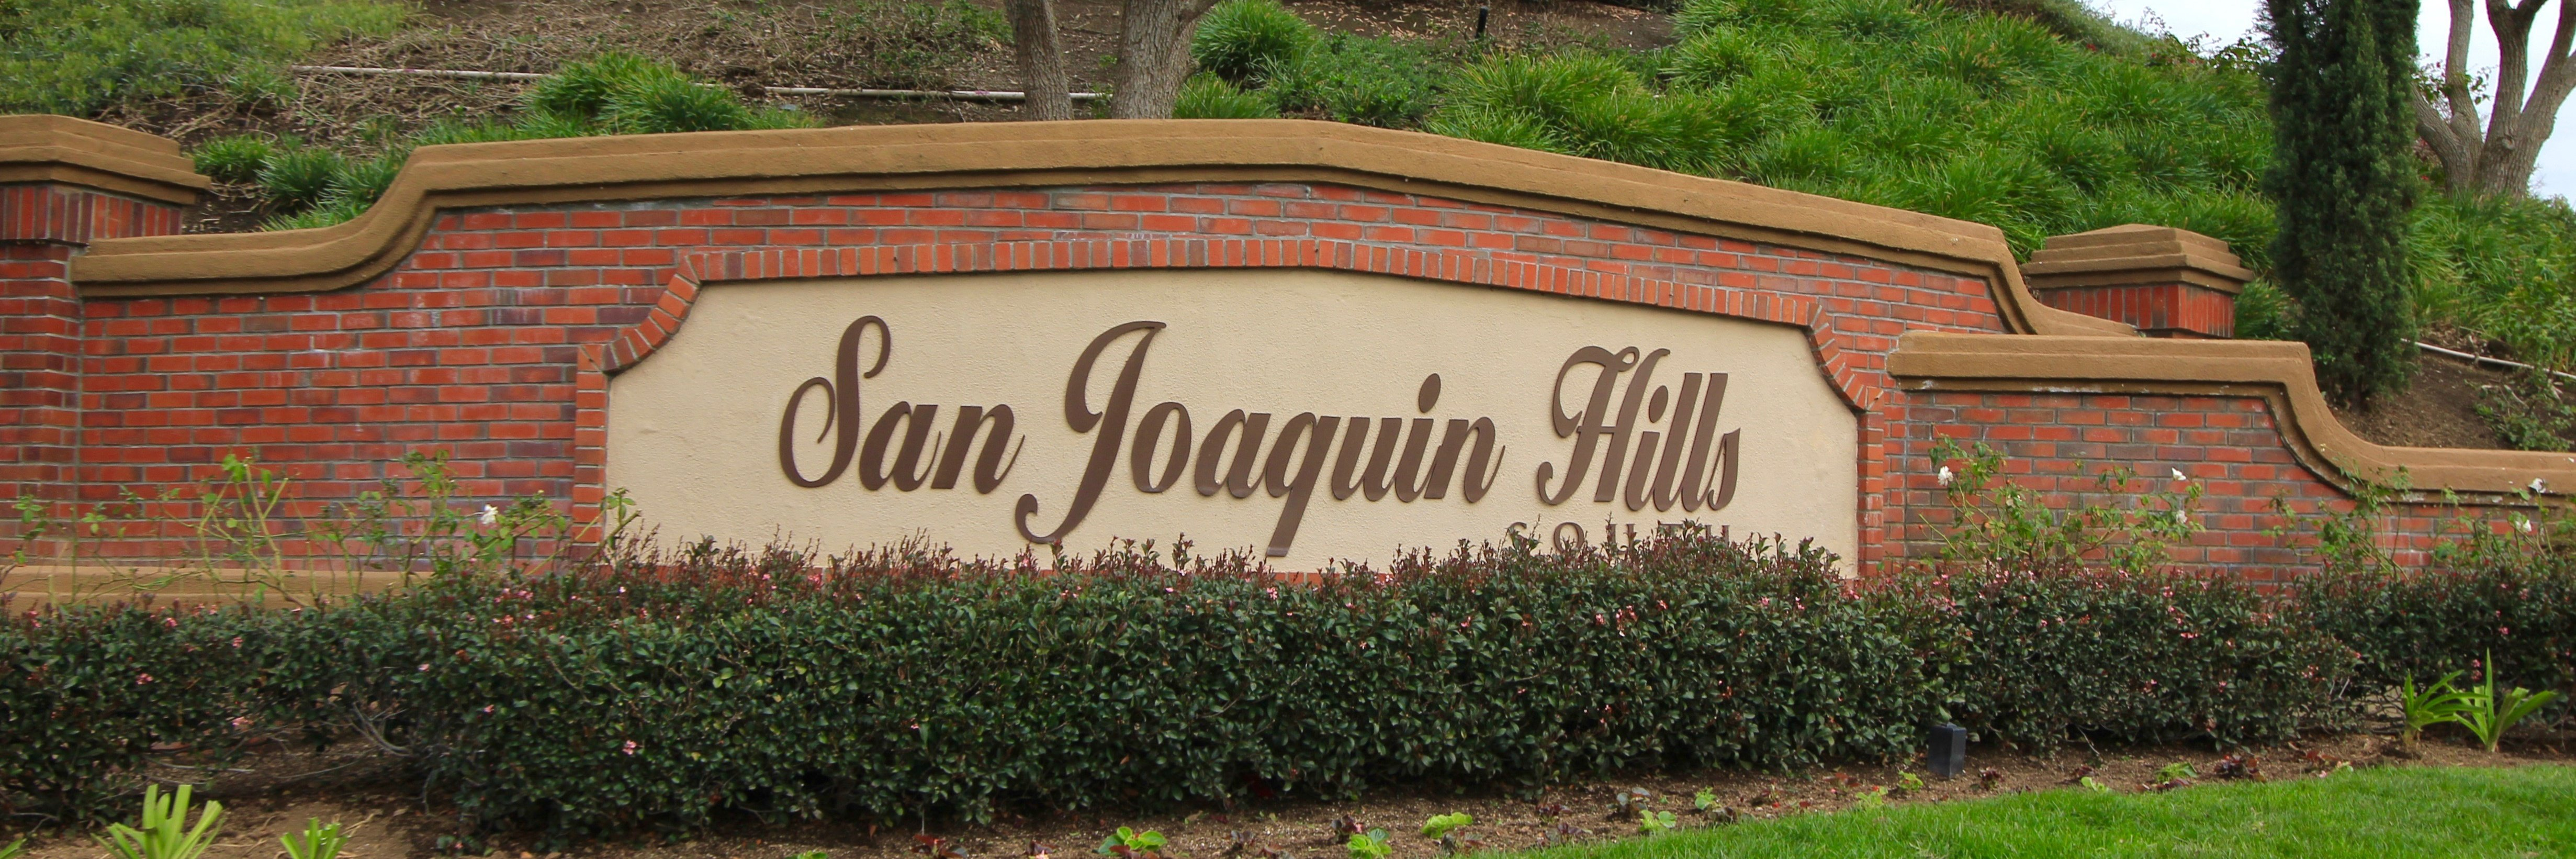 San Joaquin Hills is a neighborhood of homes located in Laguna Niguel California